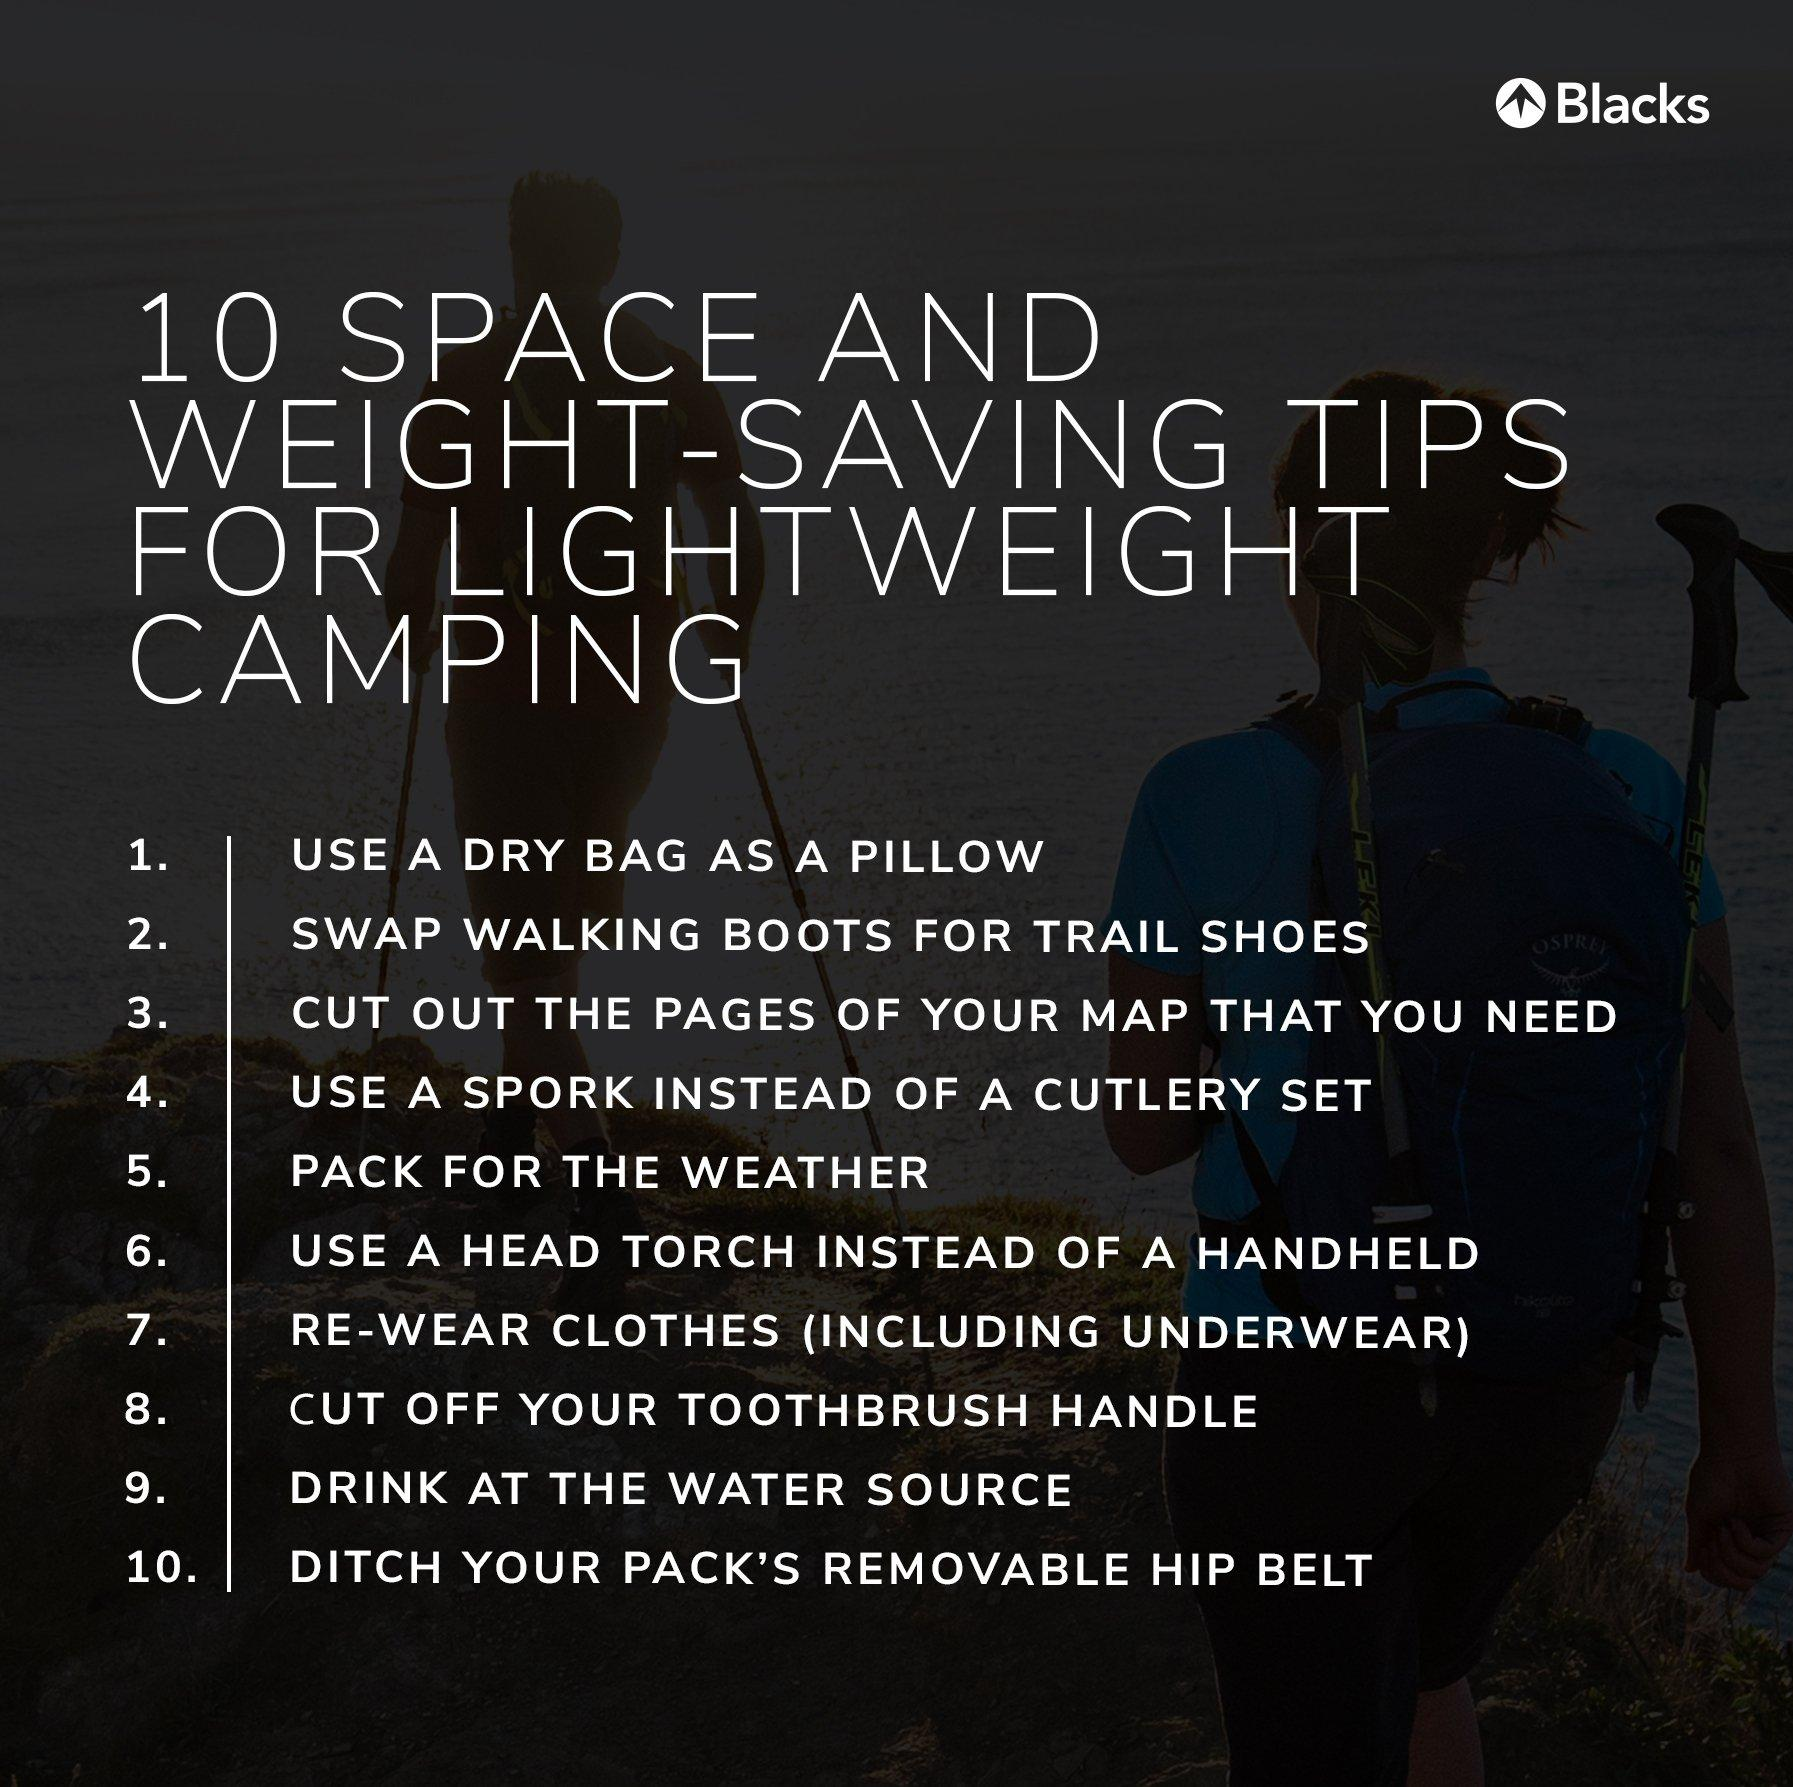 an infographic containing 10 tips for ultralight camping in the UK